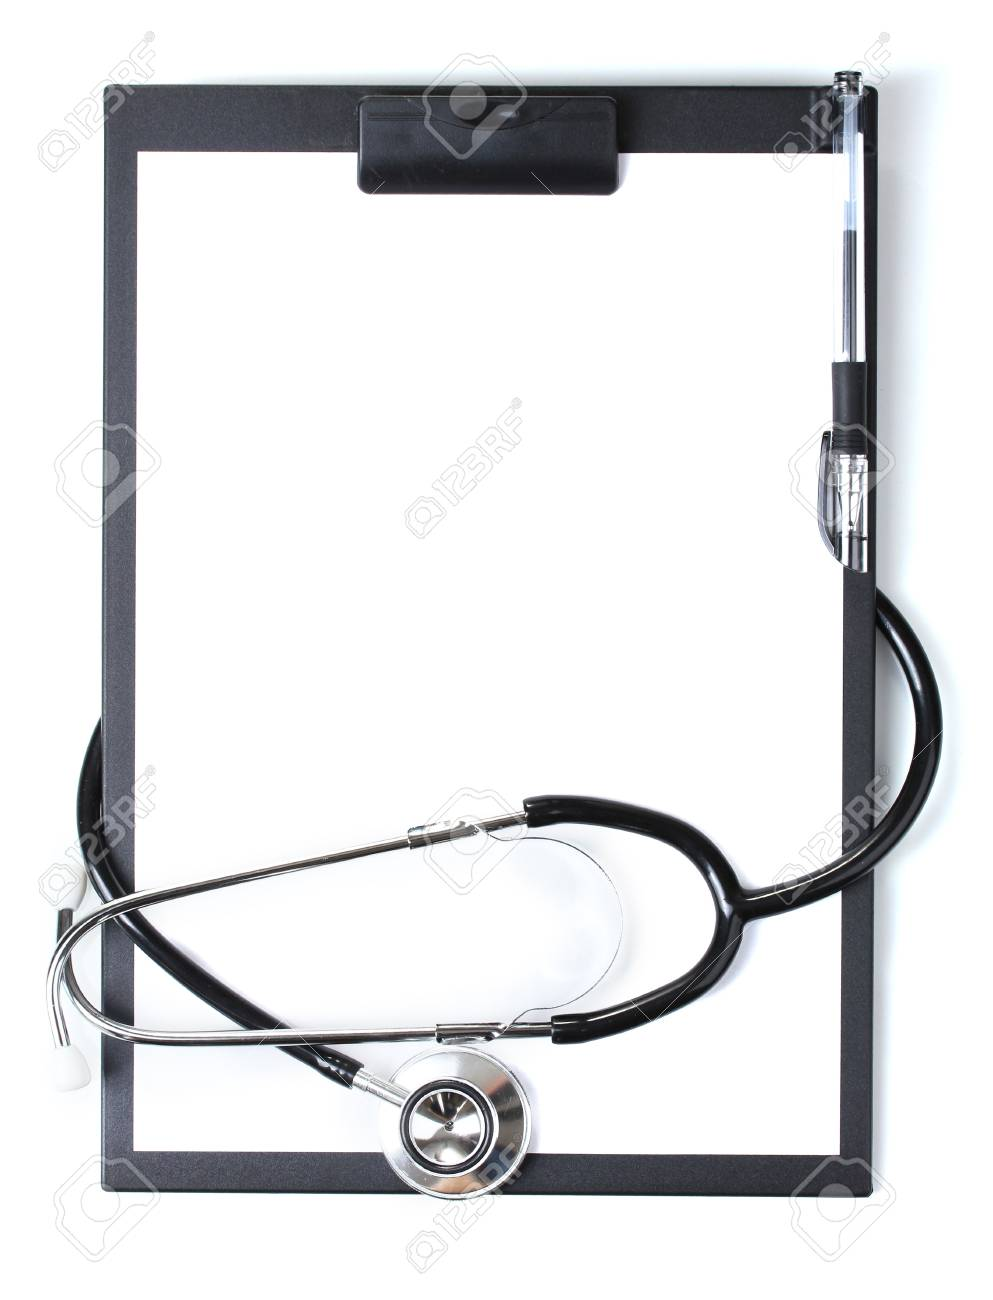 stethoscope and black clipboard isolated on white Stock Photo - 13374883